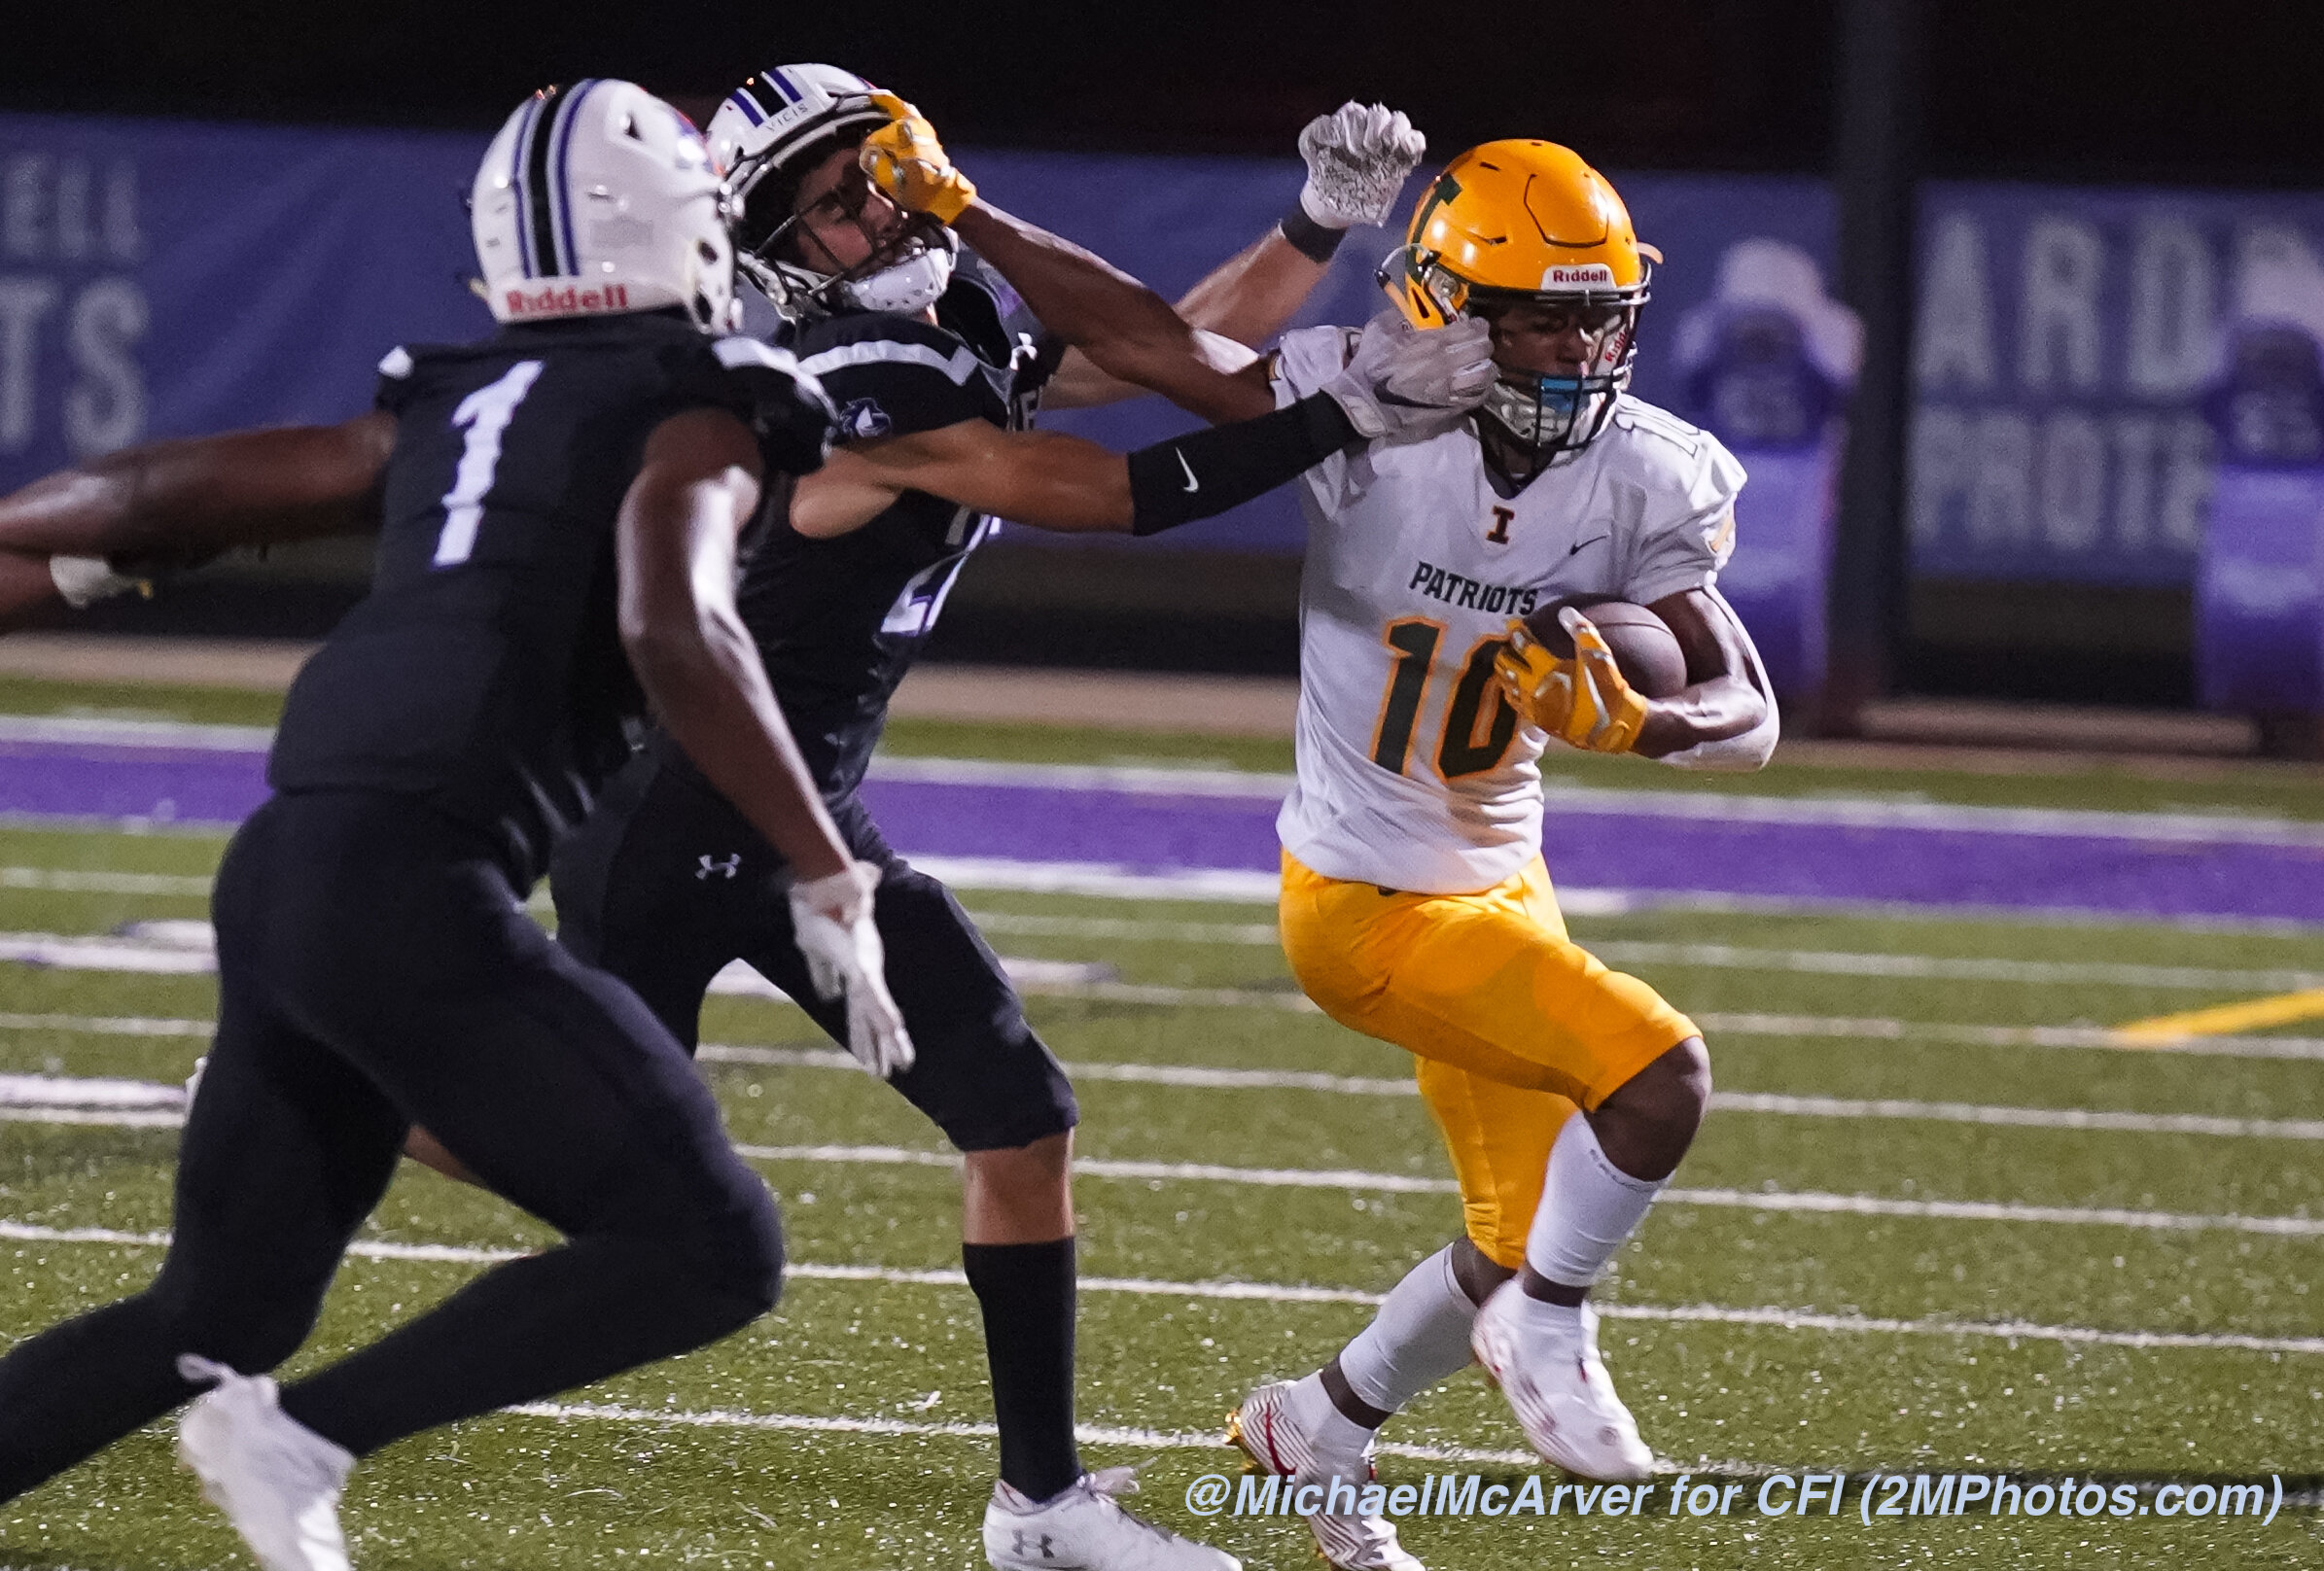 Patriots WR #10 Brevin Caldwell with the stiff arm.